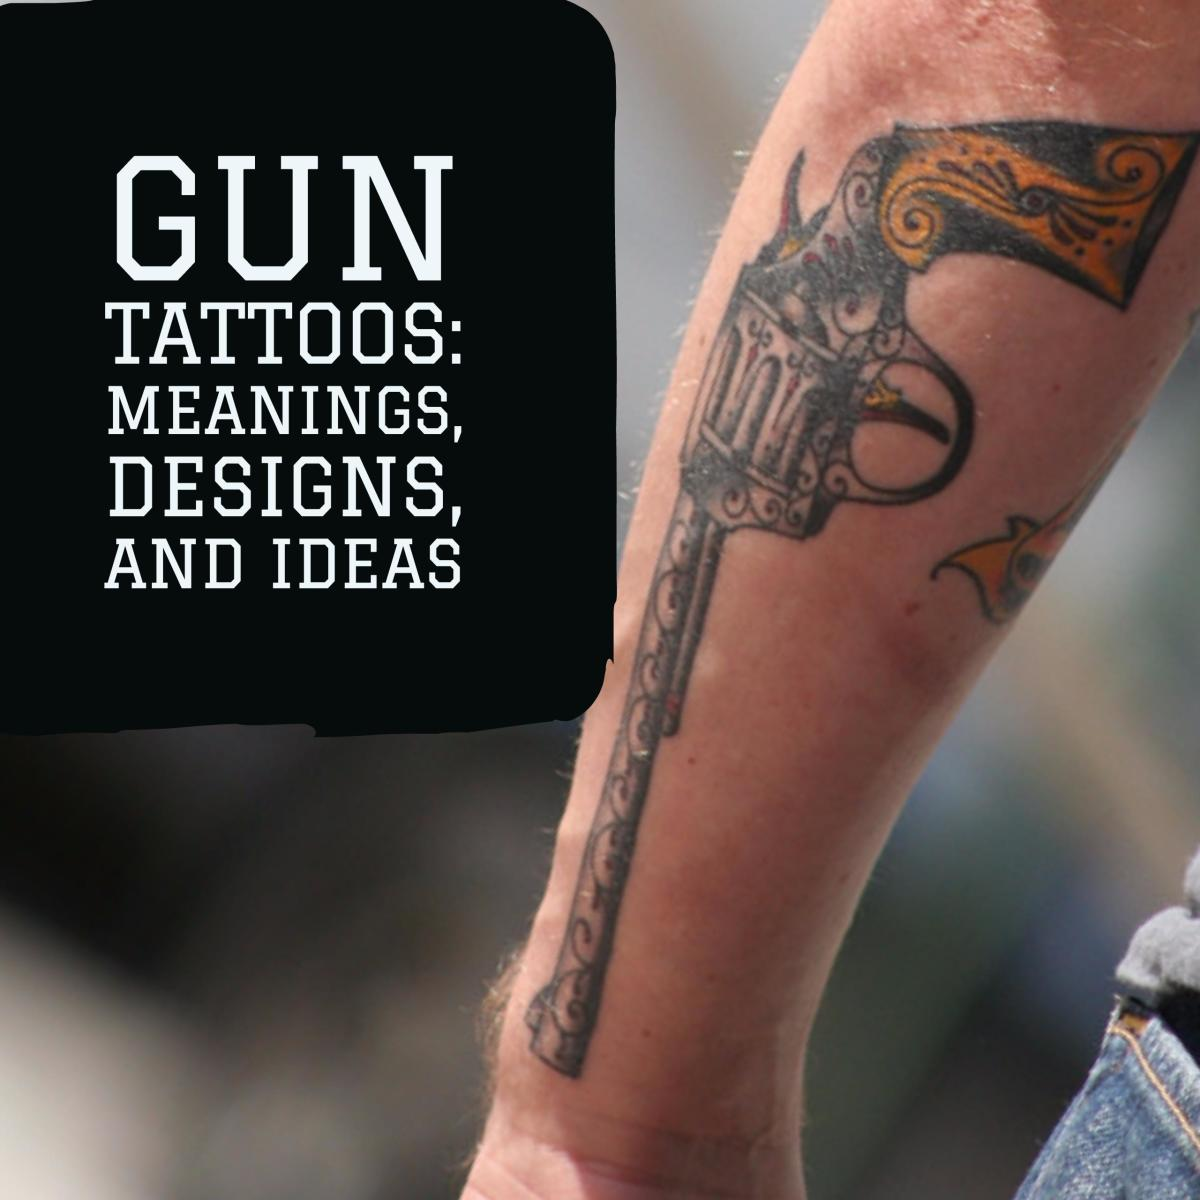 Gun Tattoos: Meanings, Designs, and Ideas | TatRing